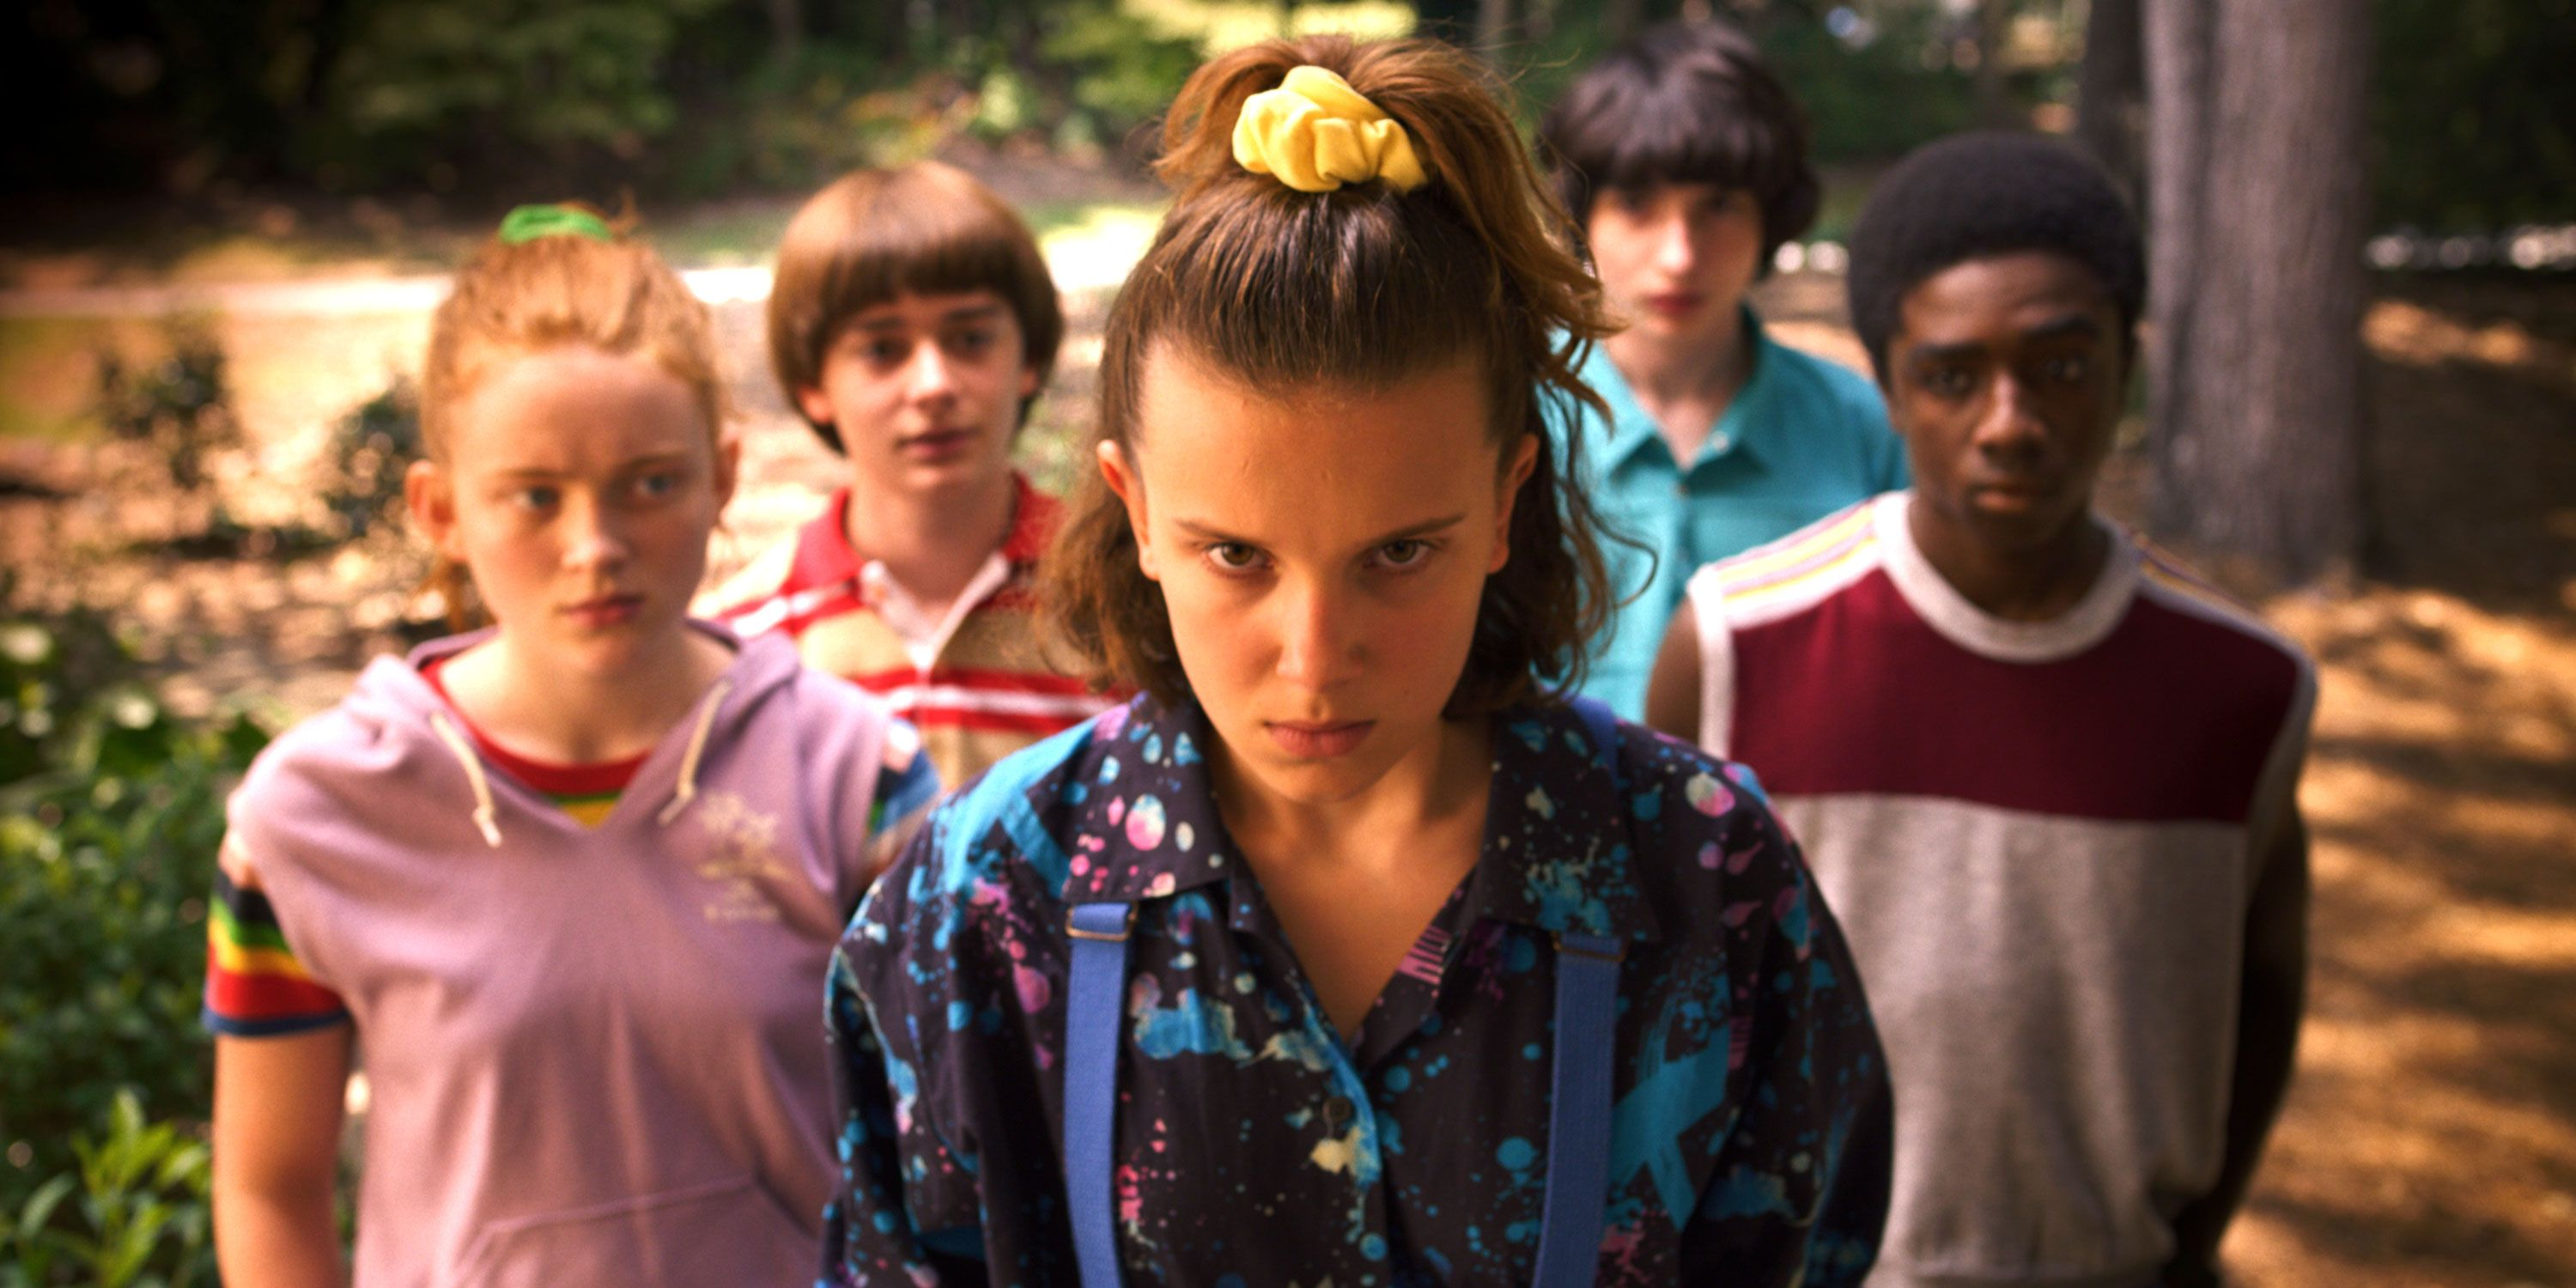 Stranger Things season 4 - Release date, cast and spoilers